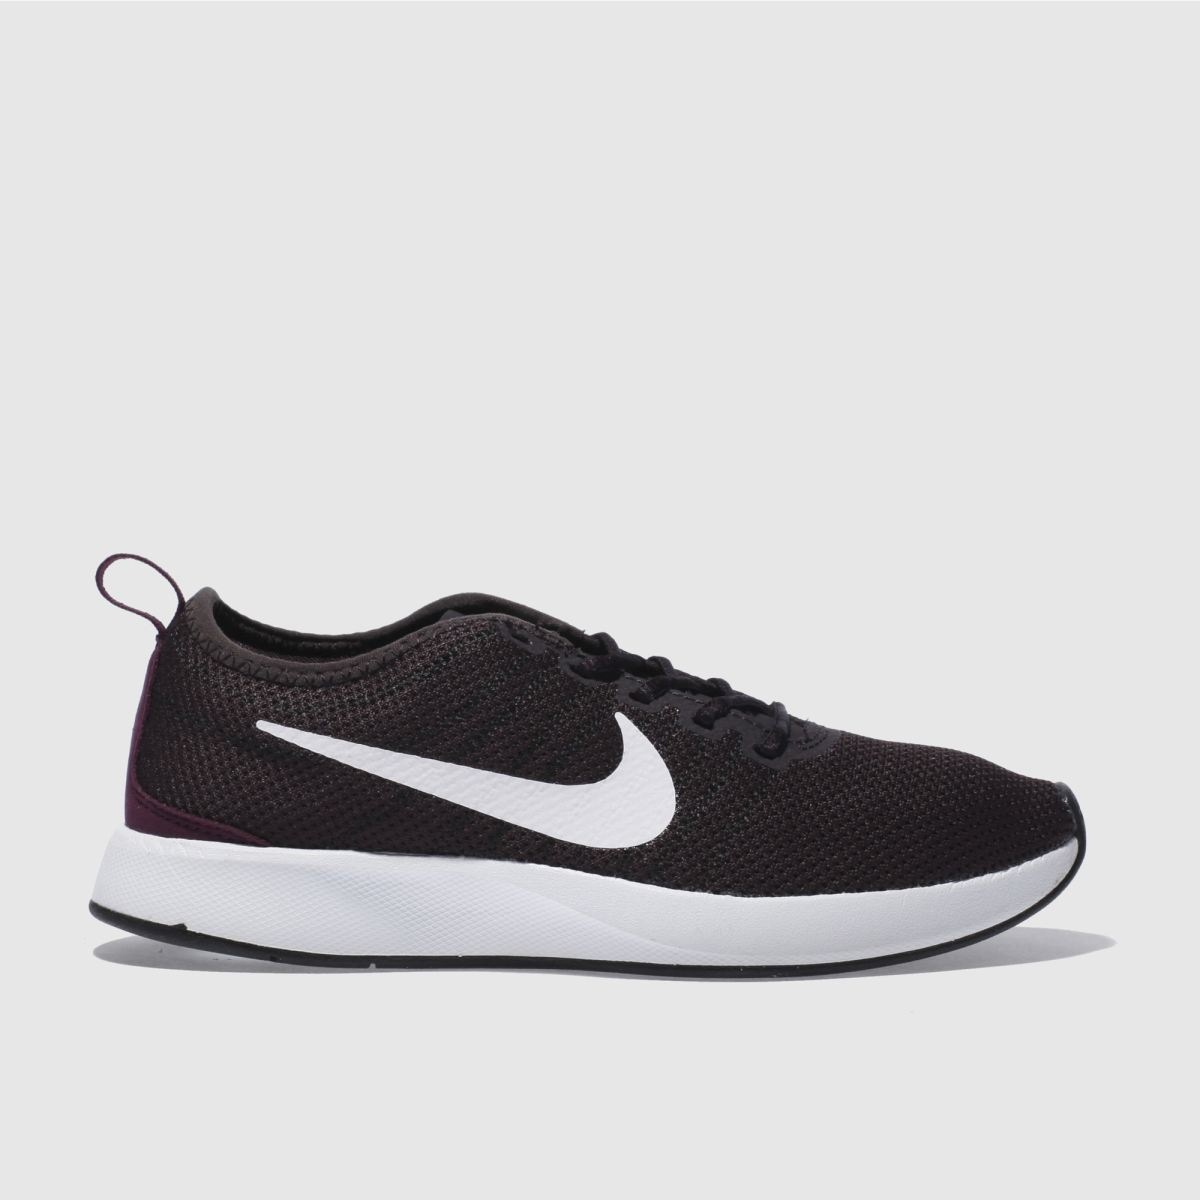 nike dark purple dualtone trainers